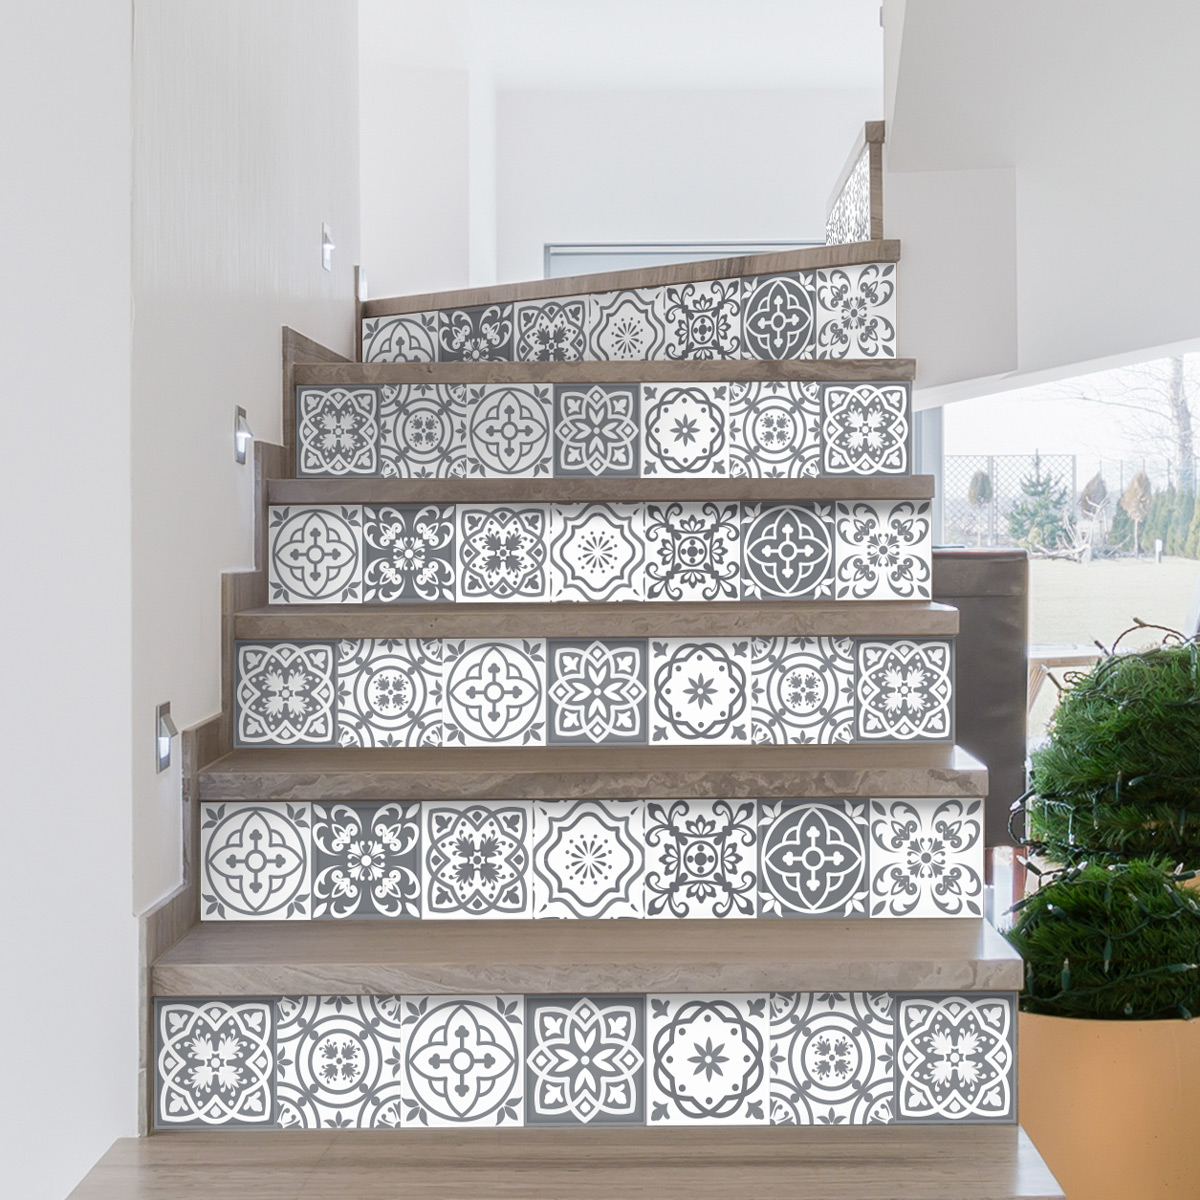 stickers escalier carreaux de ciment berto x 2 ambiance sticker col stairs rv a0102 stickers. Black Bedroom Furniture Sets. Home Design Ideas